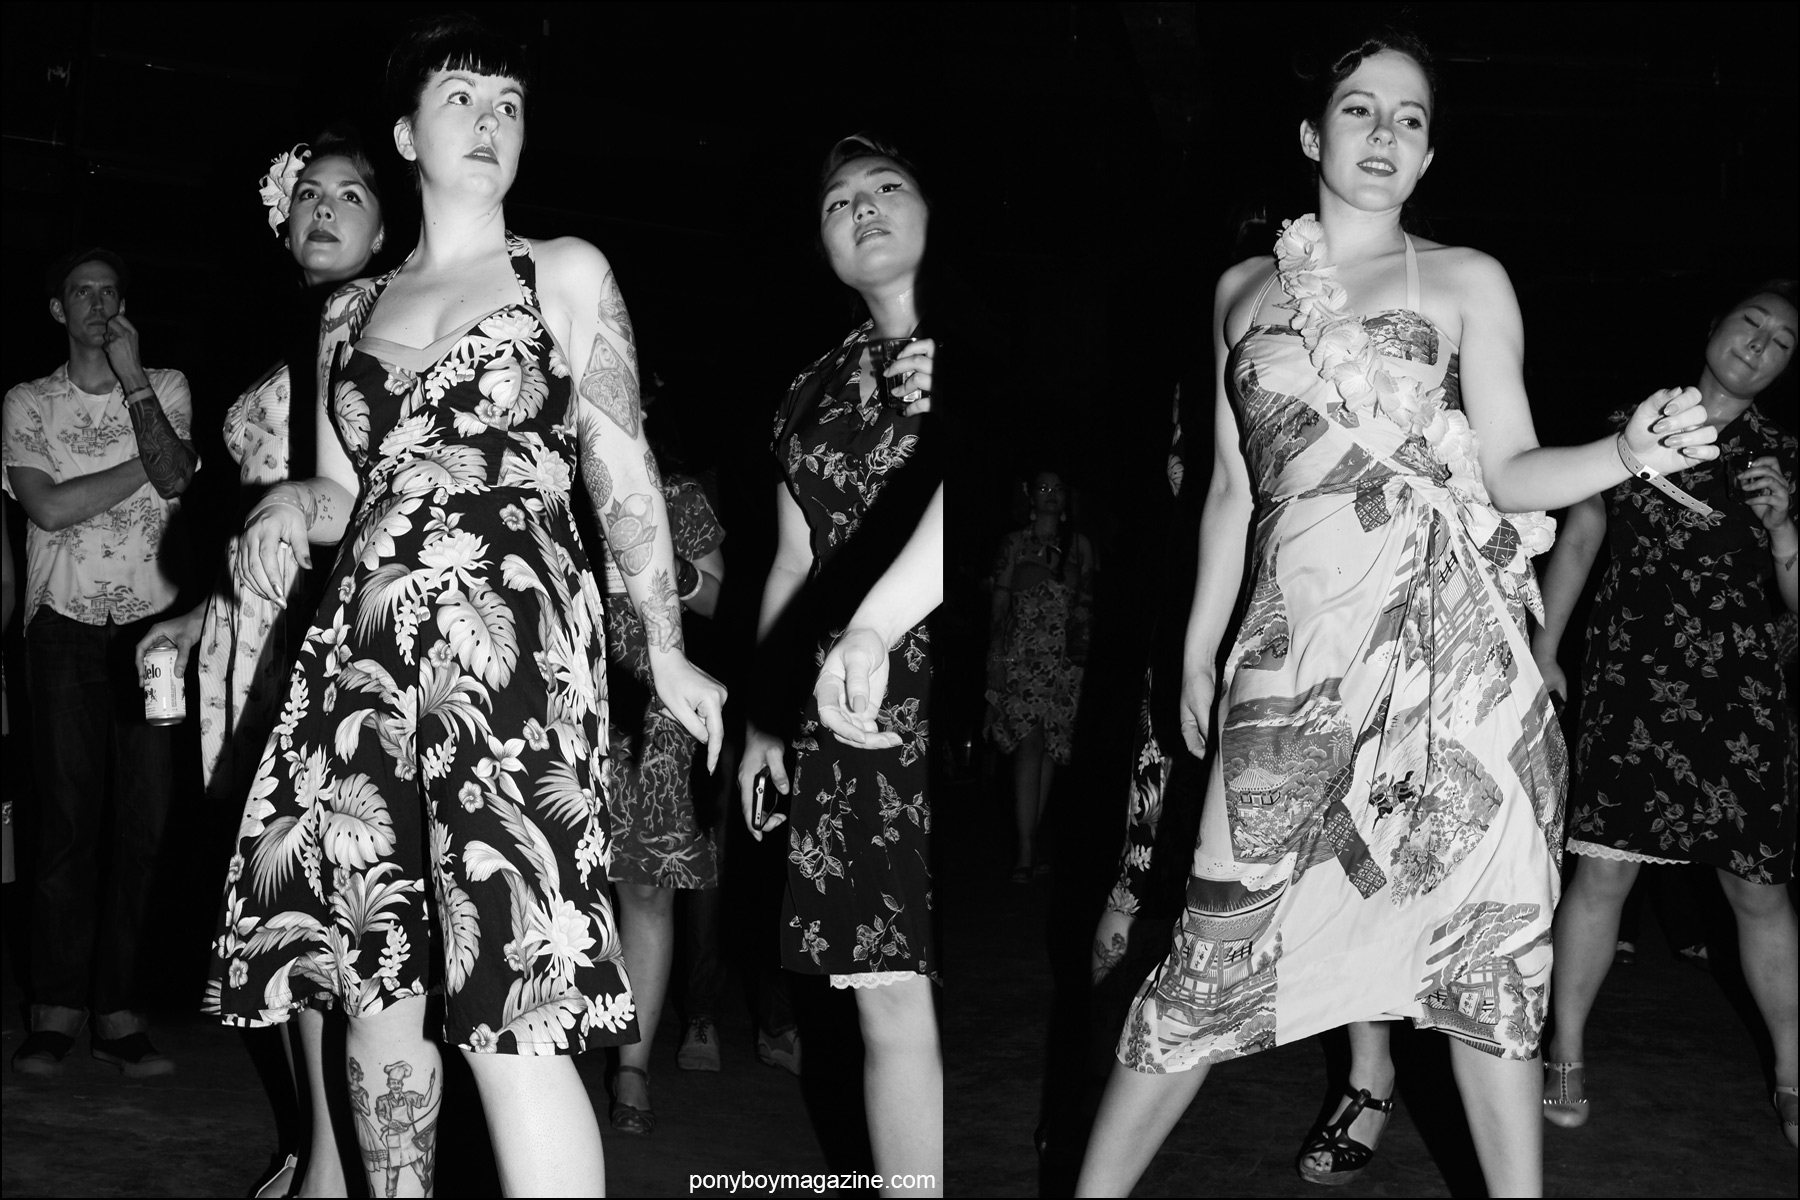 Rockabilly ladies in vintage Hawaiian dresses, photographed on the dance floor at Hula Rock Vol 2 weekender in New York City. Photographs for Ponyboy magazine NY by Alexander Thompson.